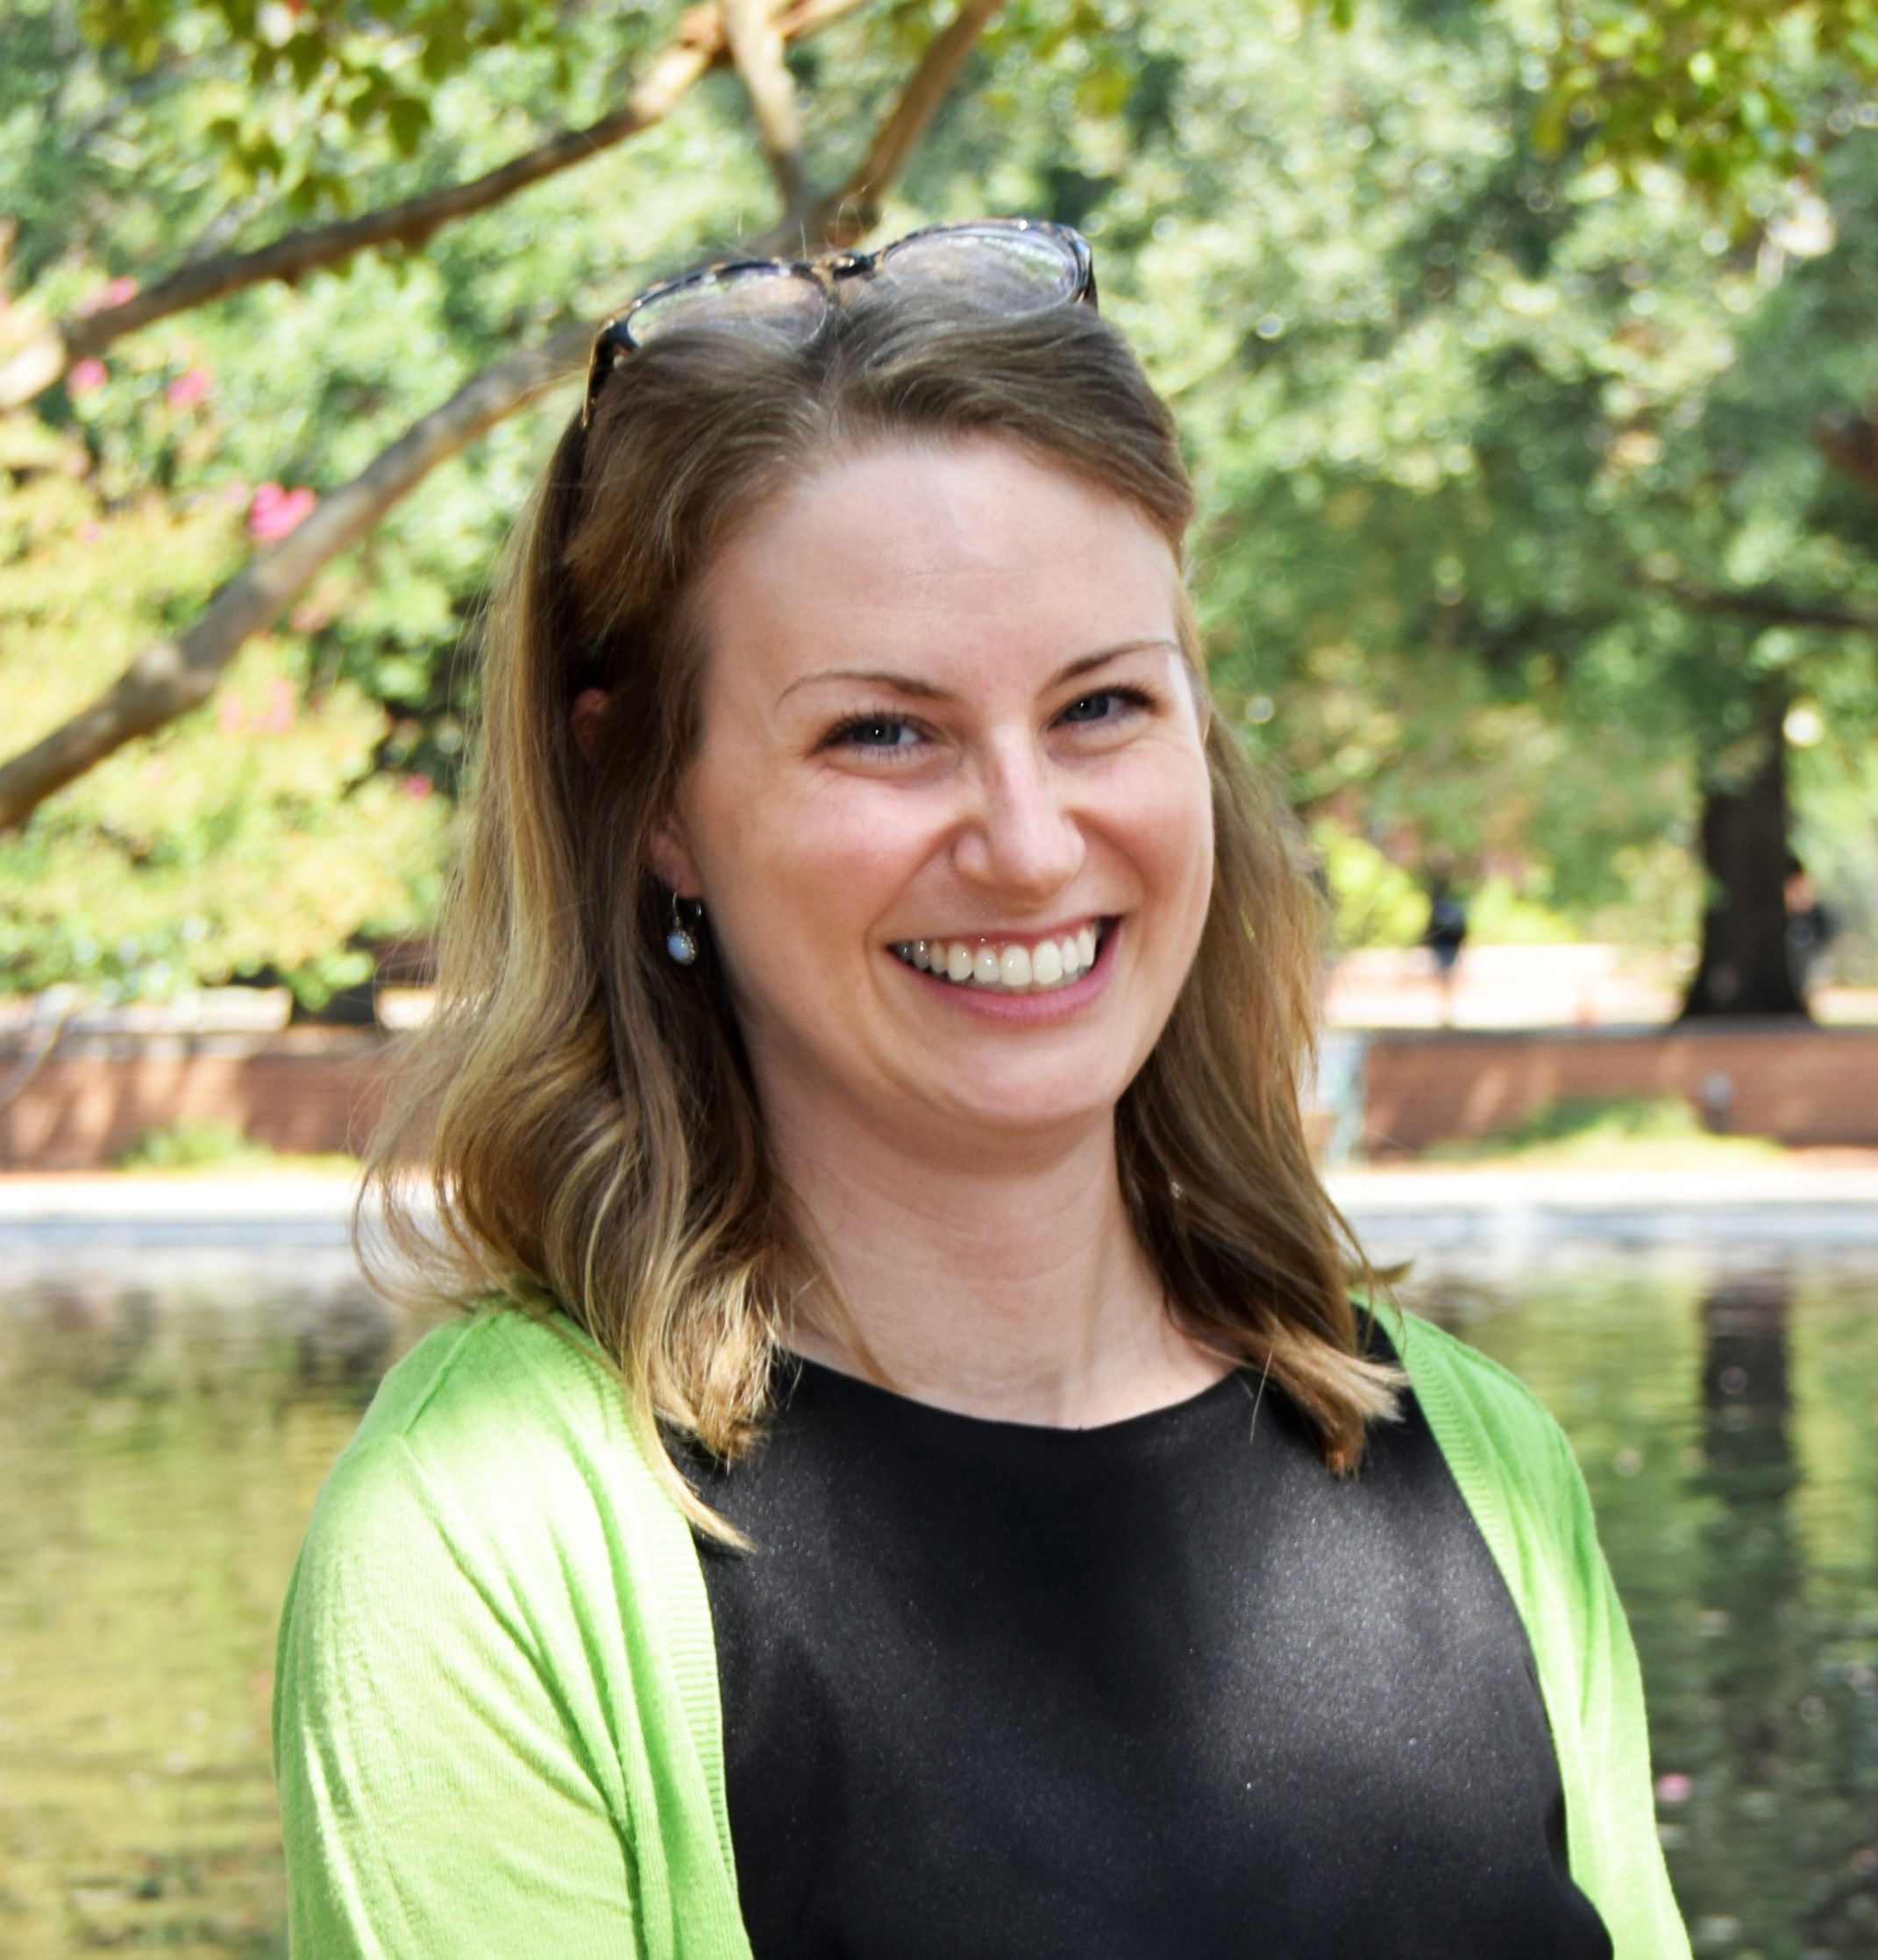 Photo of Amie Freeman, Scholarly Communication Librarian at University of South Carolina